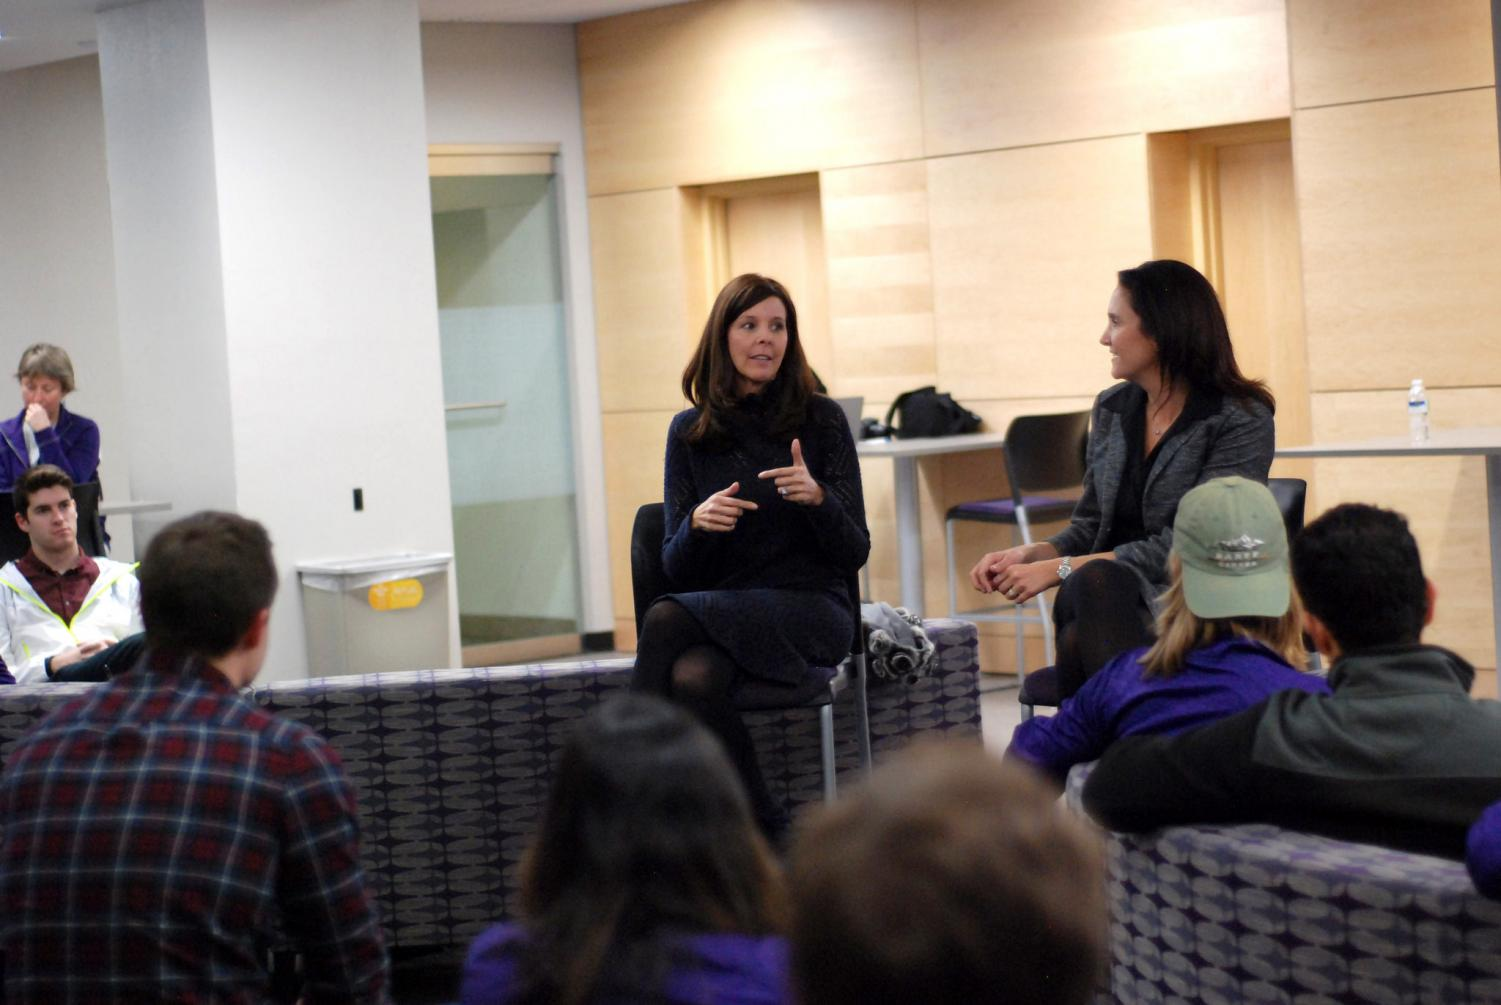 Left to Right: Speakers Jennifer Smith and Amy Langer answer questions after a Women's Excellence in Entrepreneurship and Leadership presentation hosted by the Winona State College of Business on Thursday, Nov. 1 in Science Laboratory Center 120.